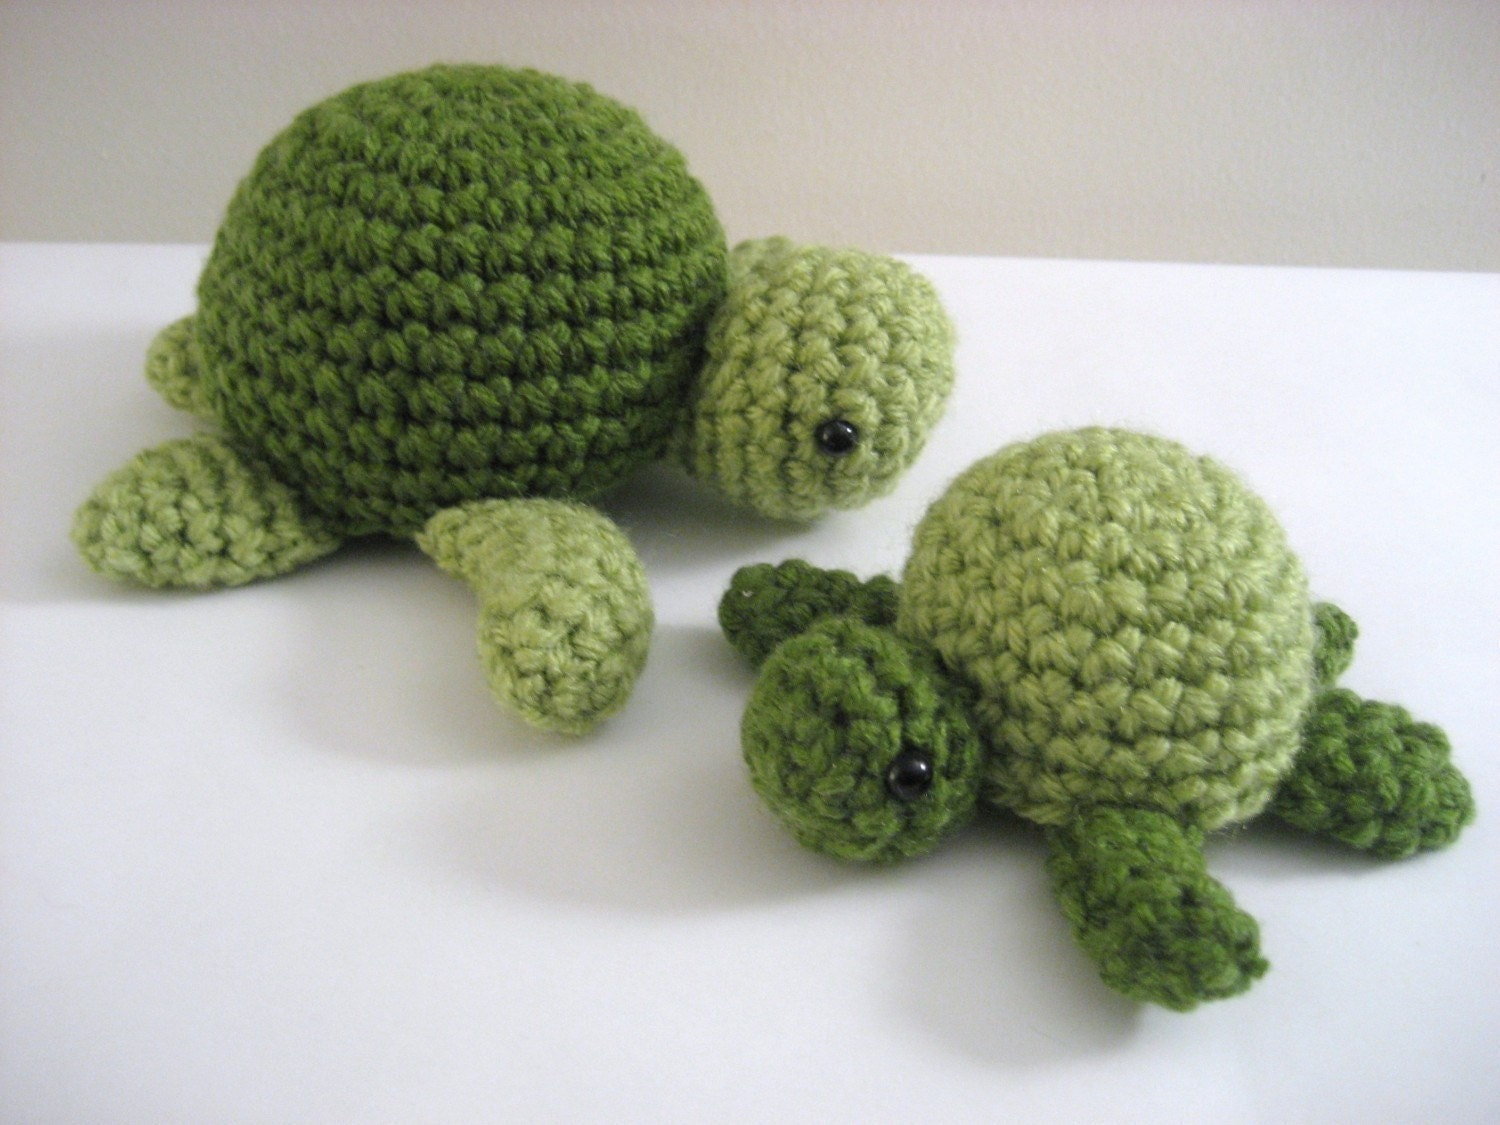 Crochet Pattern Amigurumi Turtle : Amigurumi Crochet Sea Turtle Pattern Digital Download